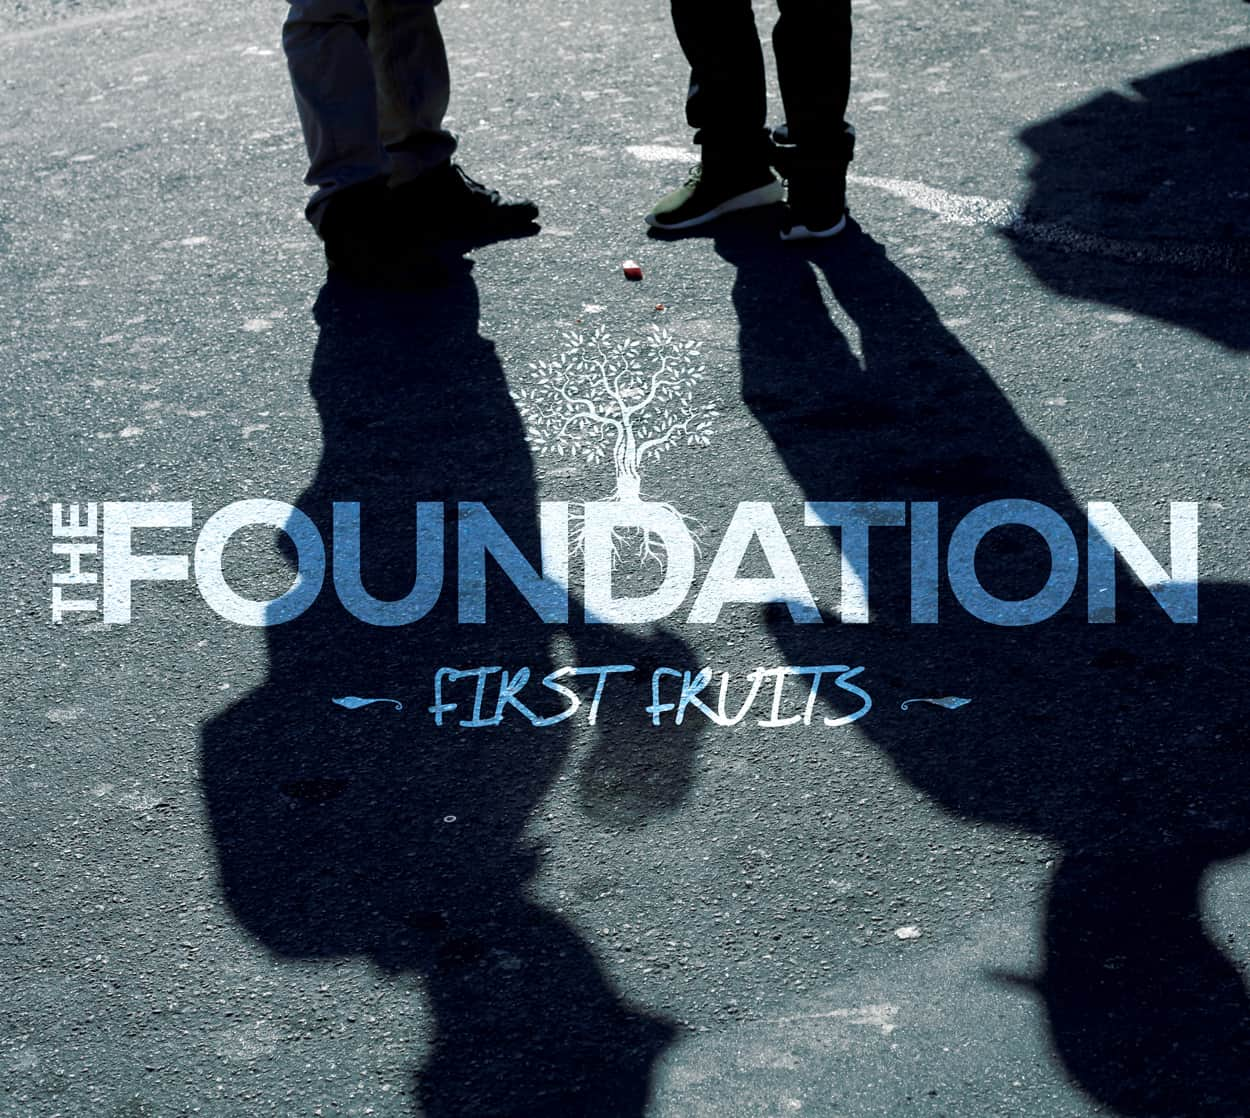 the foundation - album art design - front